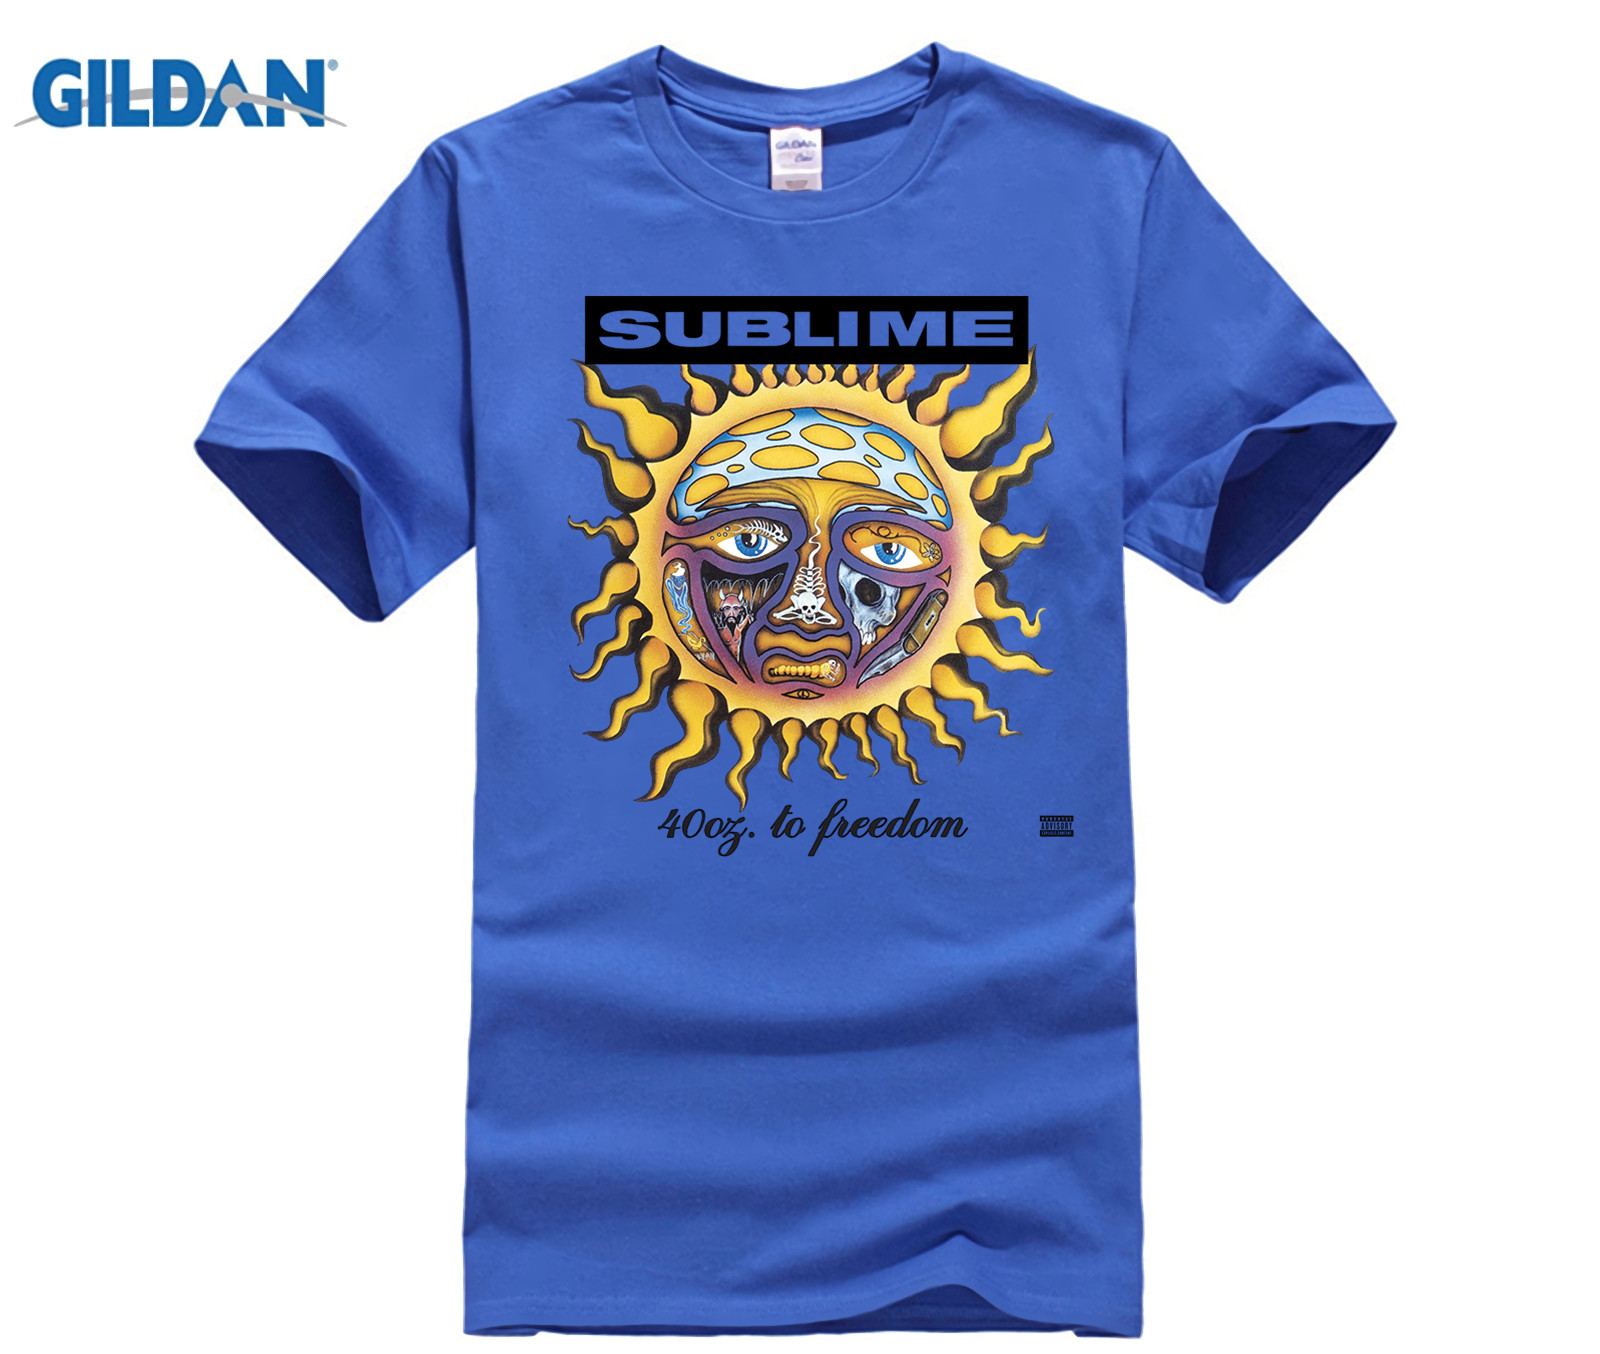 4a9b3733a Gildan New Sublime 40 Oz. To Freedom Rock Band White men t shirt-in T-Shirts  from Men's Clothing on Aliexpress.com | Alibaba Group